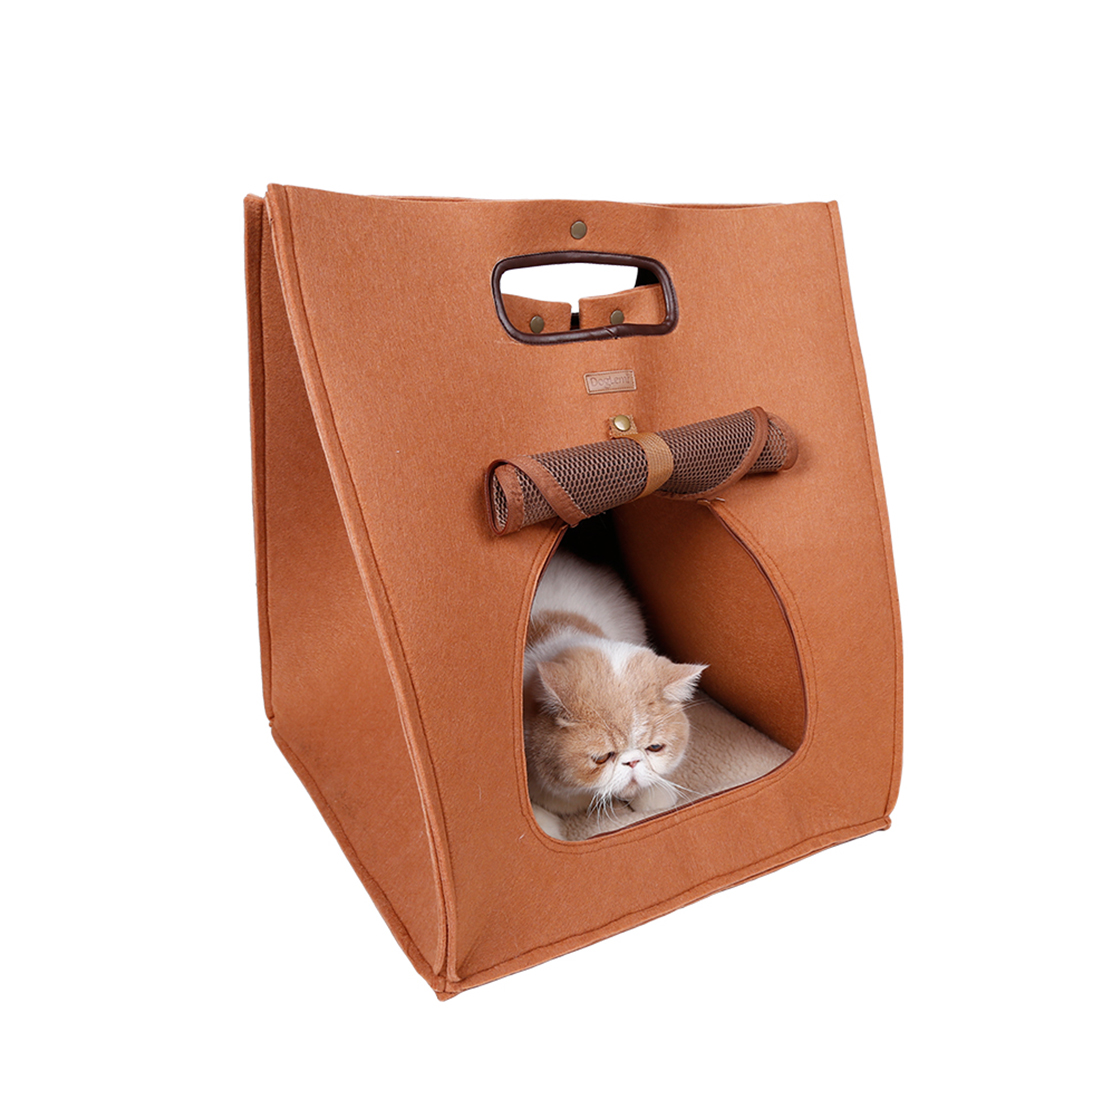 Unique Bargins Portable Travel Pet Carrier Bag Cat House Warm Puppy Dog Bed Brown DOGLEMI Authorized